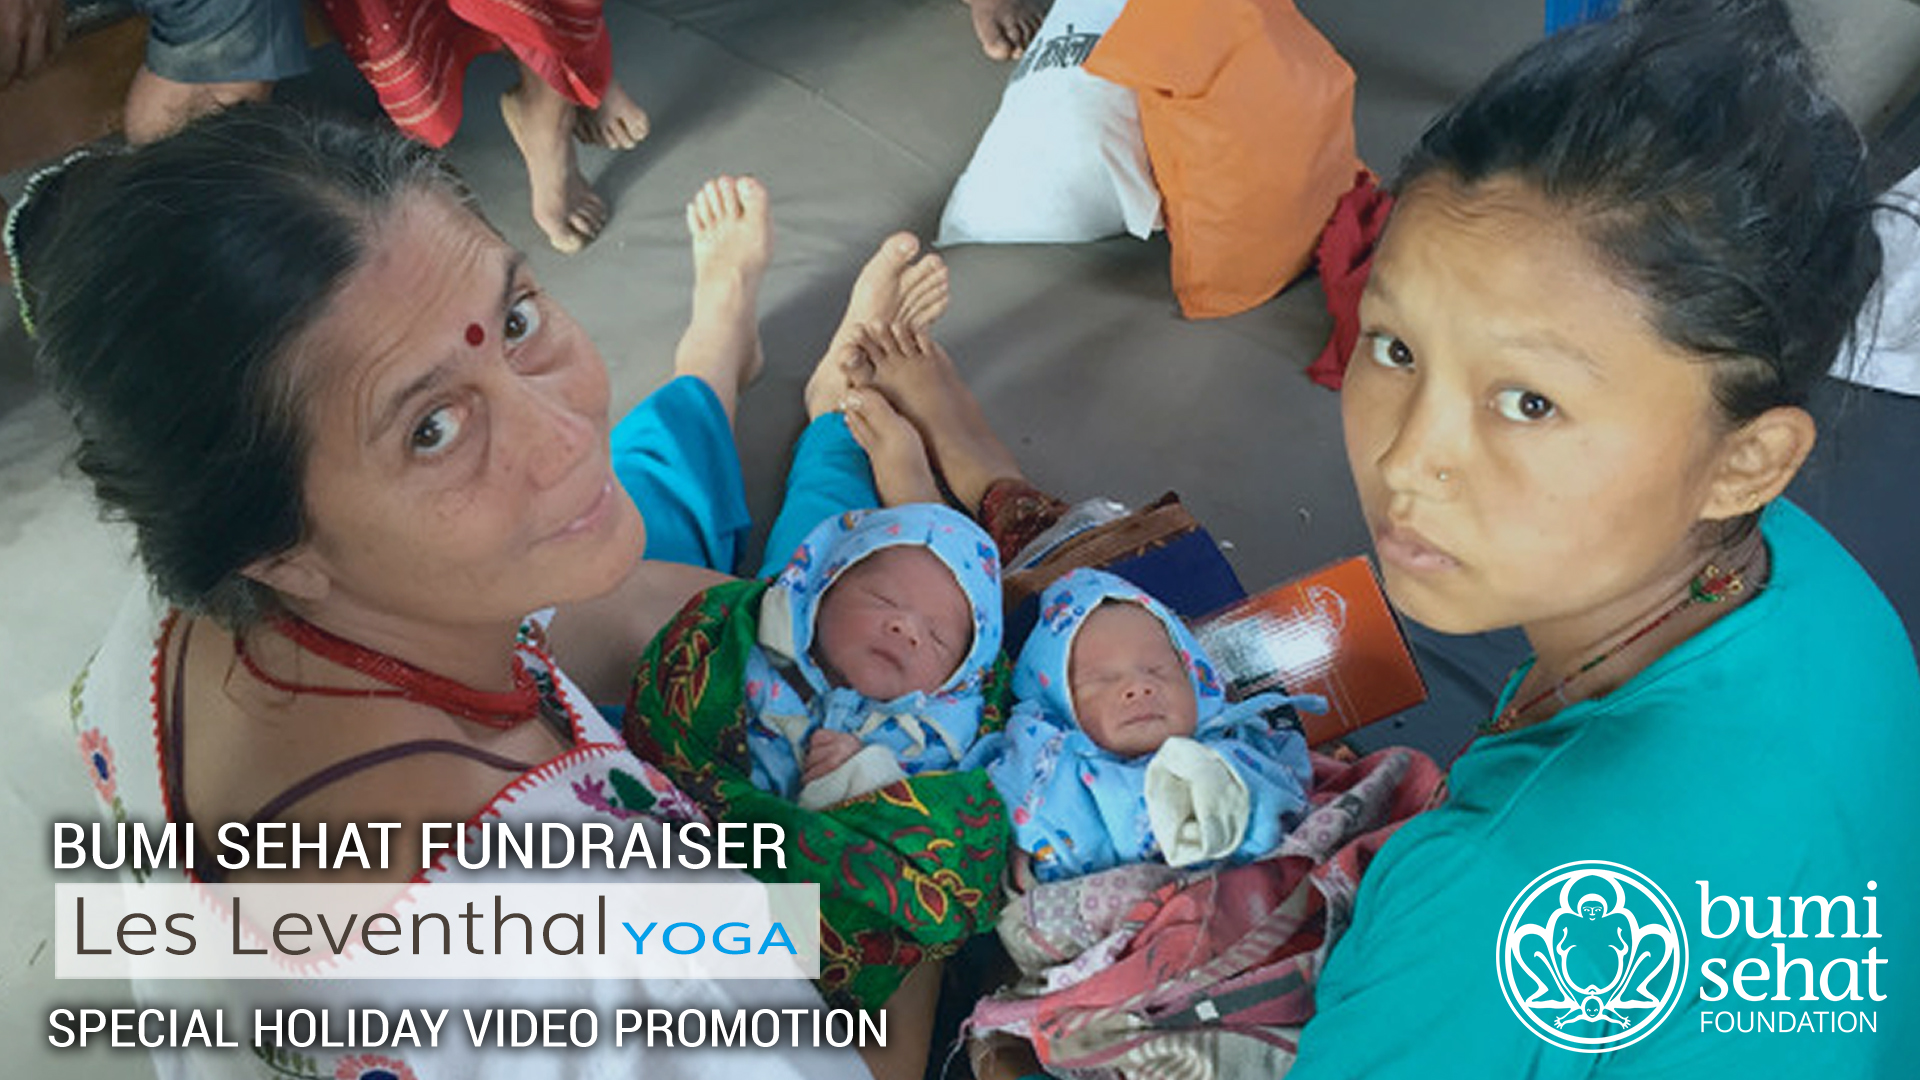 Bumi Sehat Fundraiser